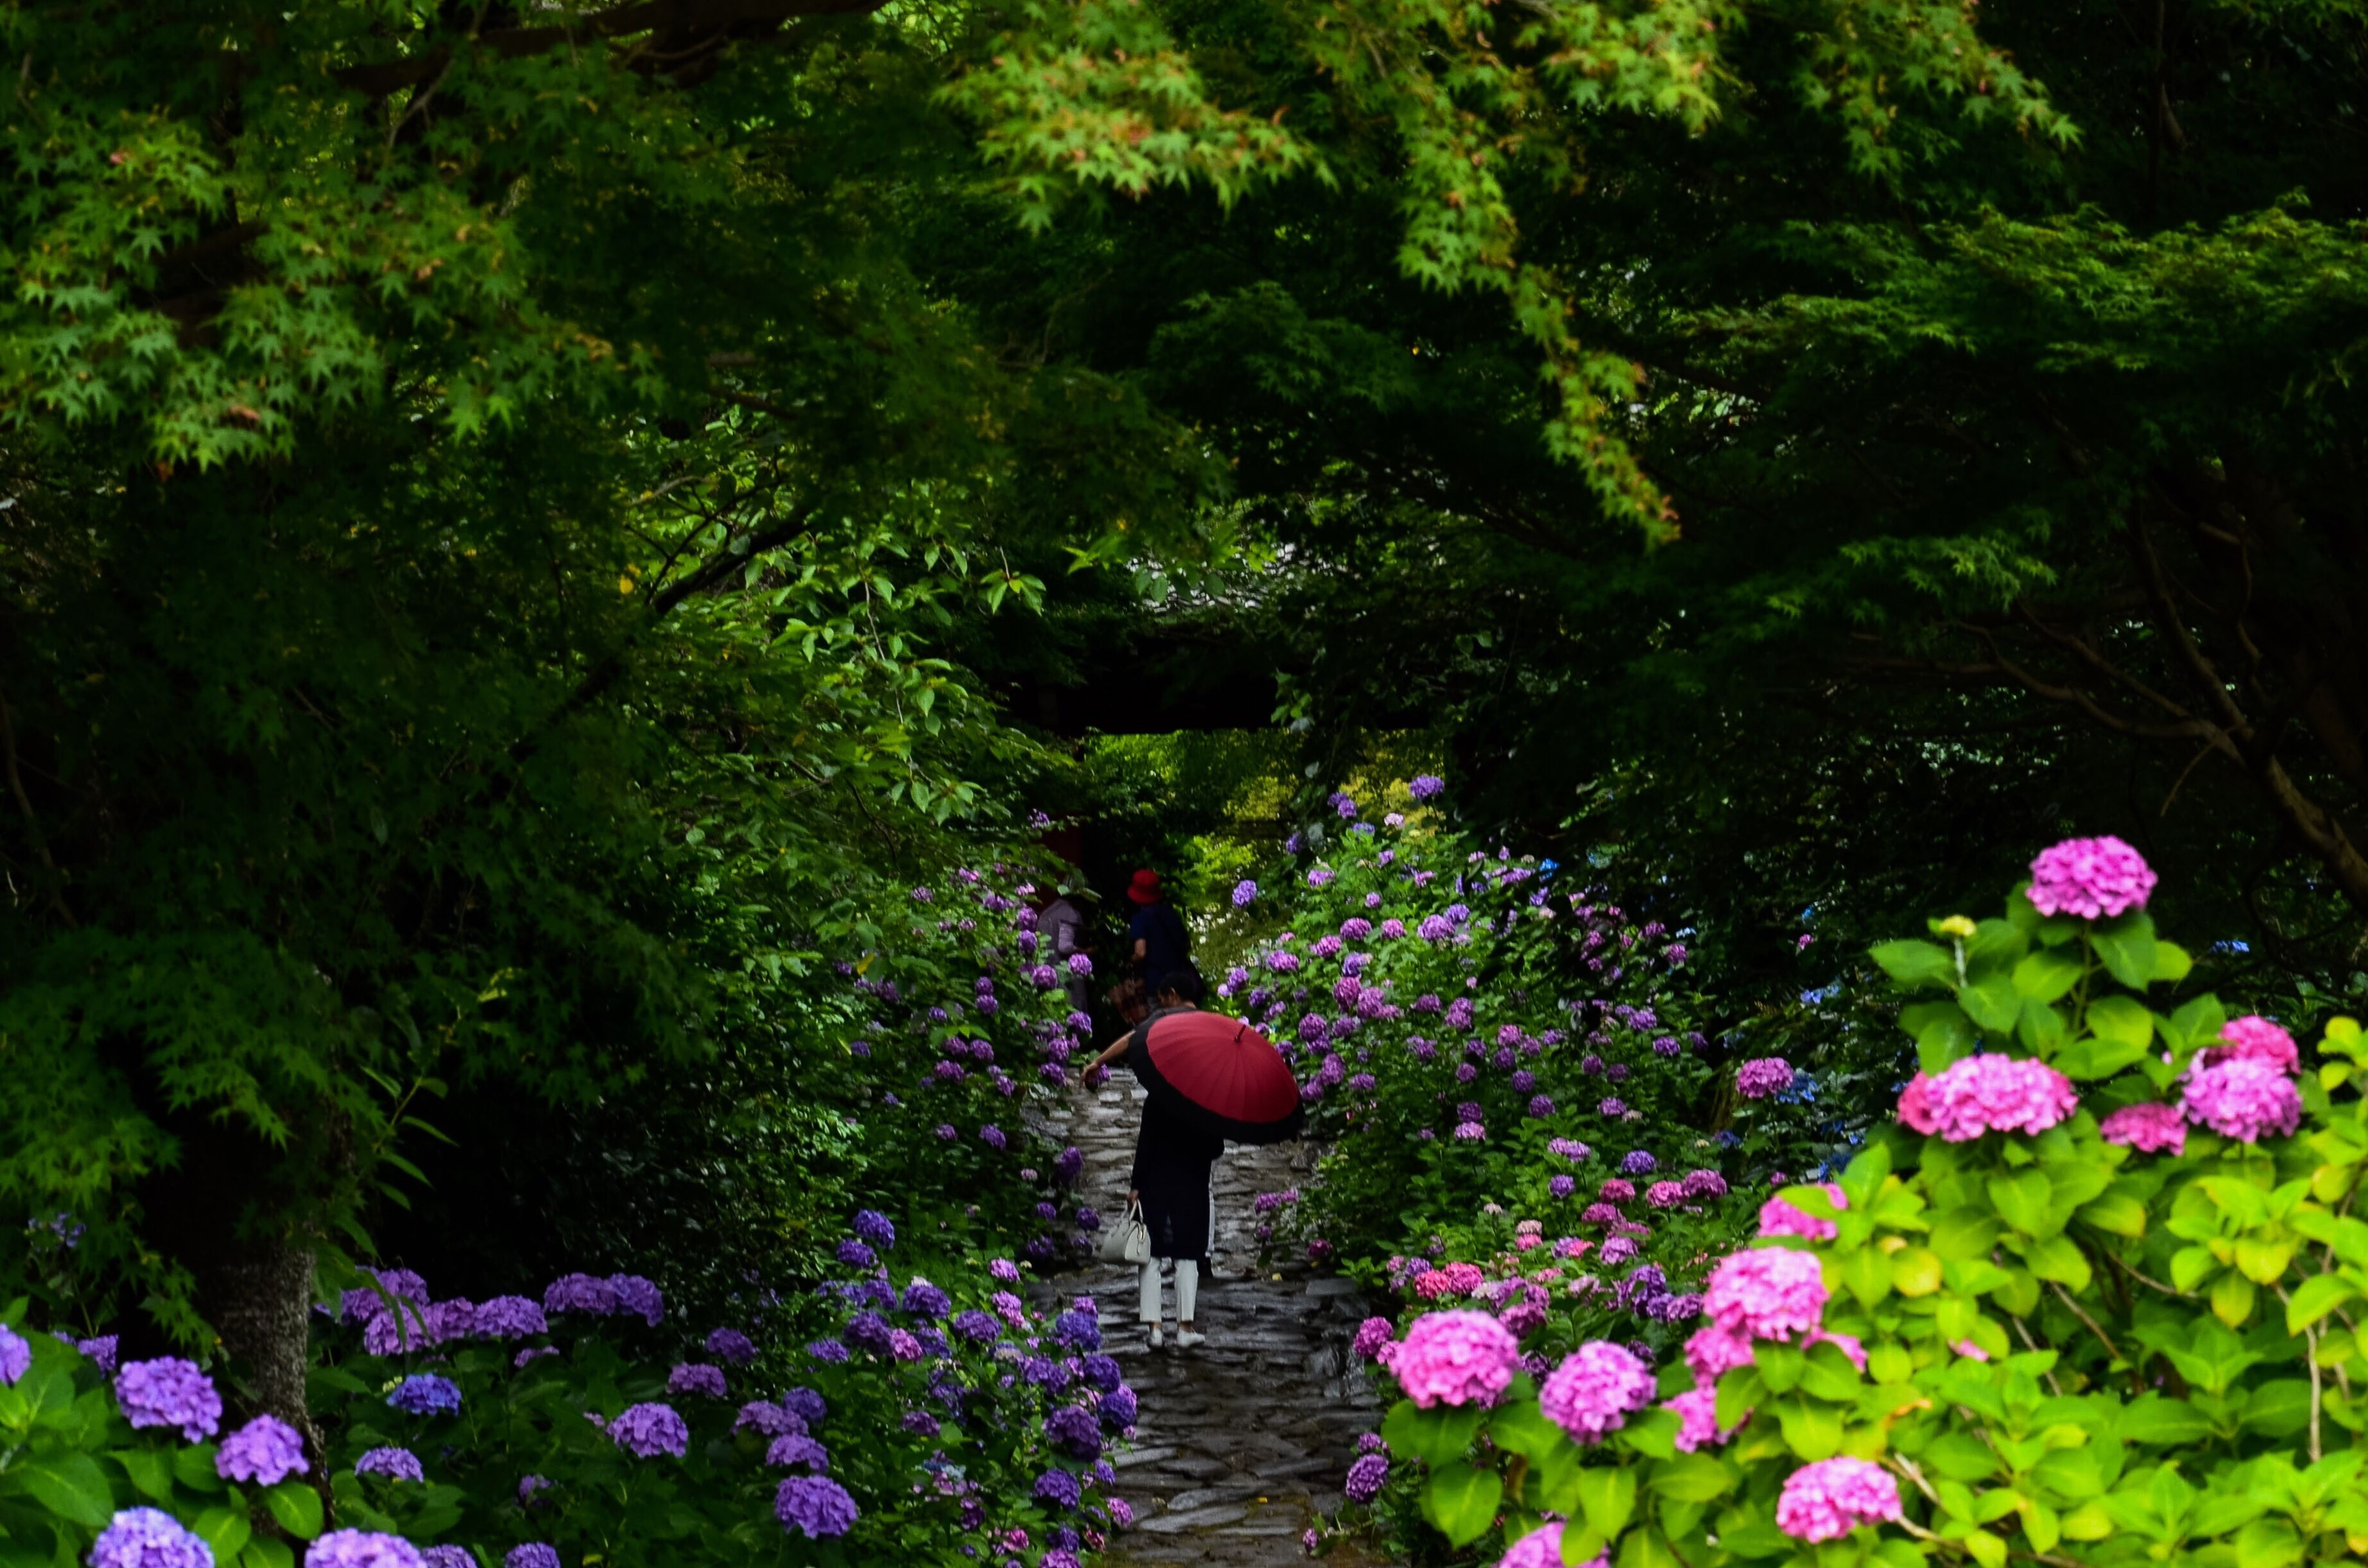 flower, growth, plant, beauty in nature, freshness, green color, nature, tree, fragility, pink color, park - man made space, leisure activity, purple, lifestyles, blooming, tranquility, petal, high angle view